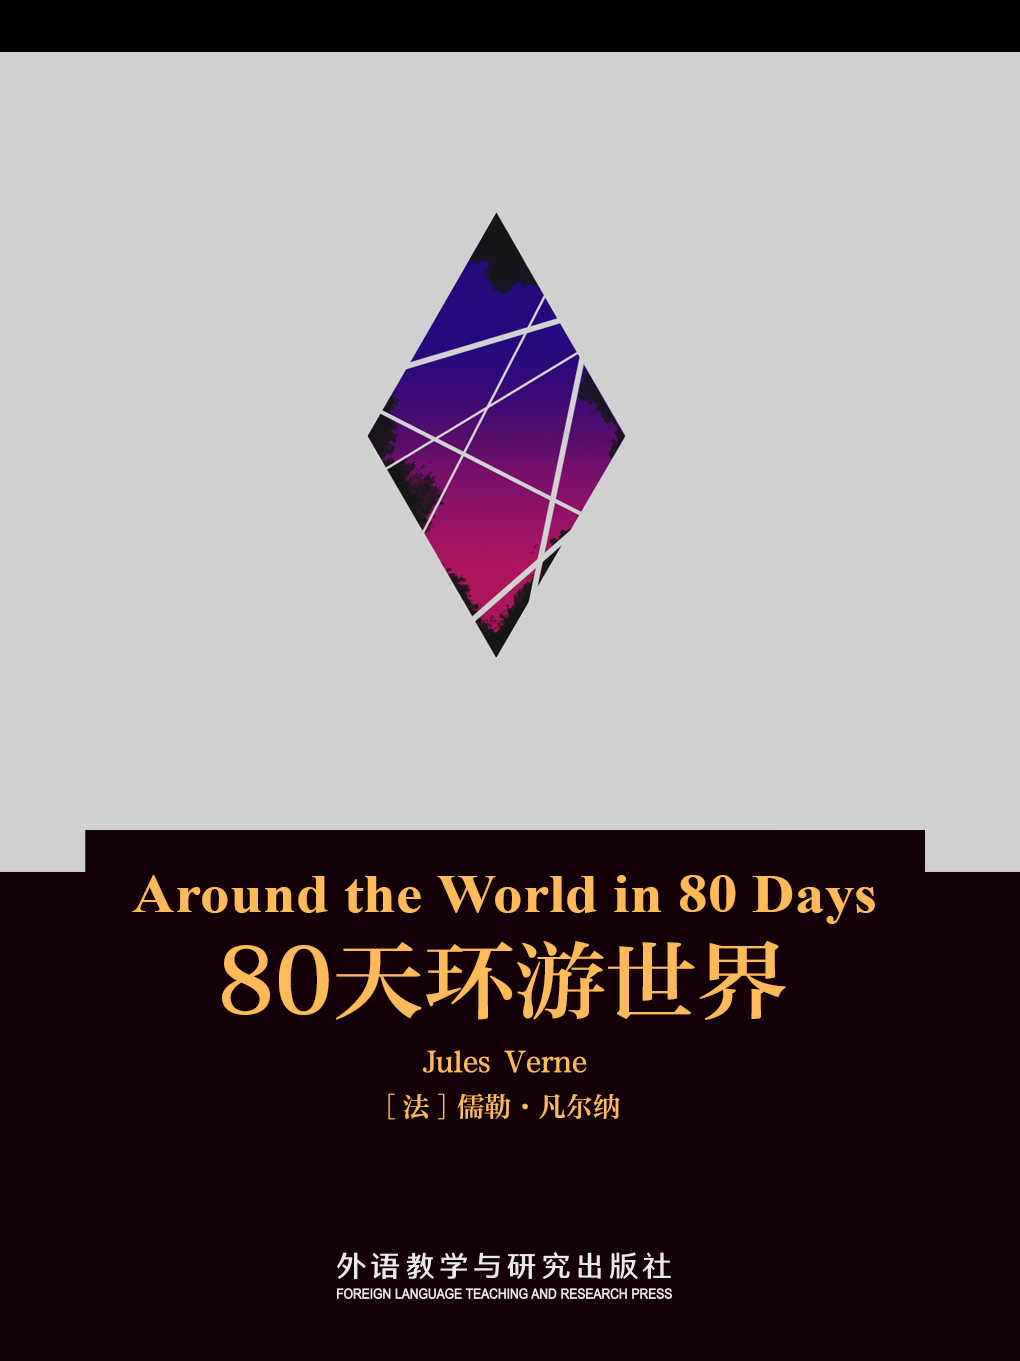 80天环游世界 Around the World in 80 Days